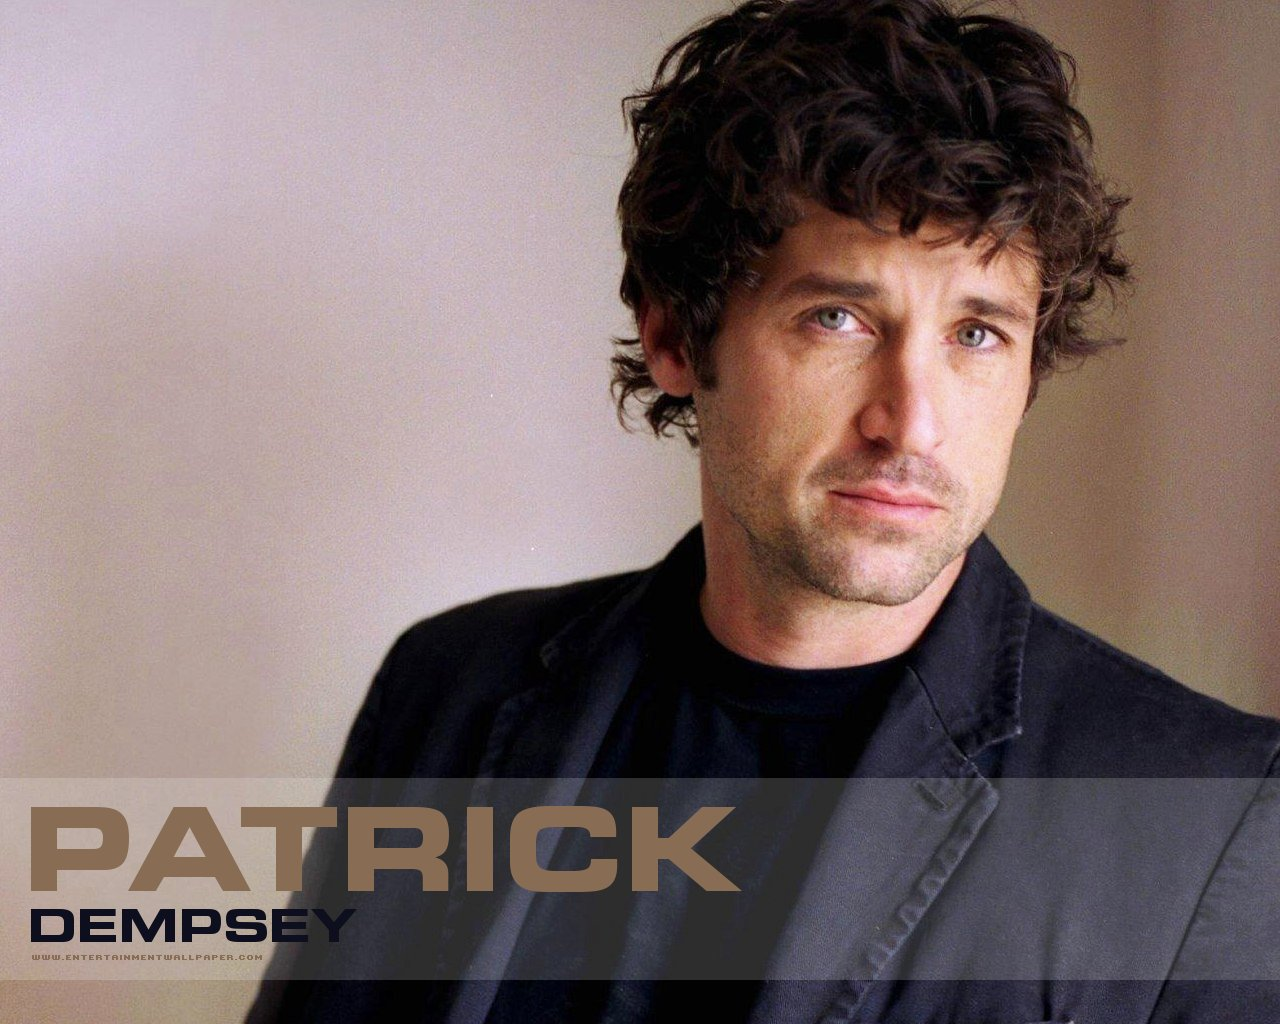 Patrick Dempsey full hd wallpapers